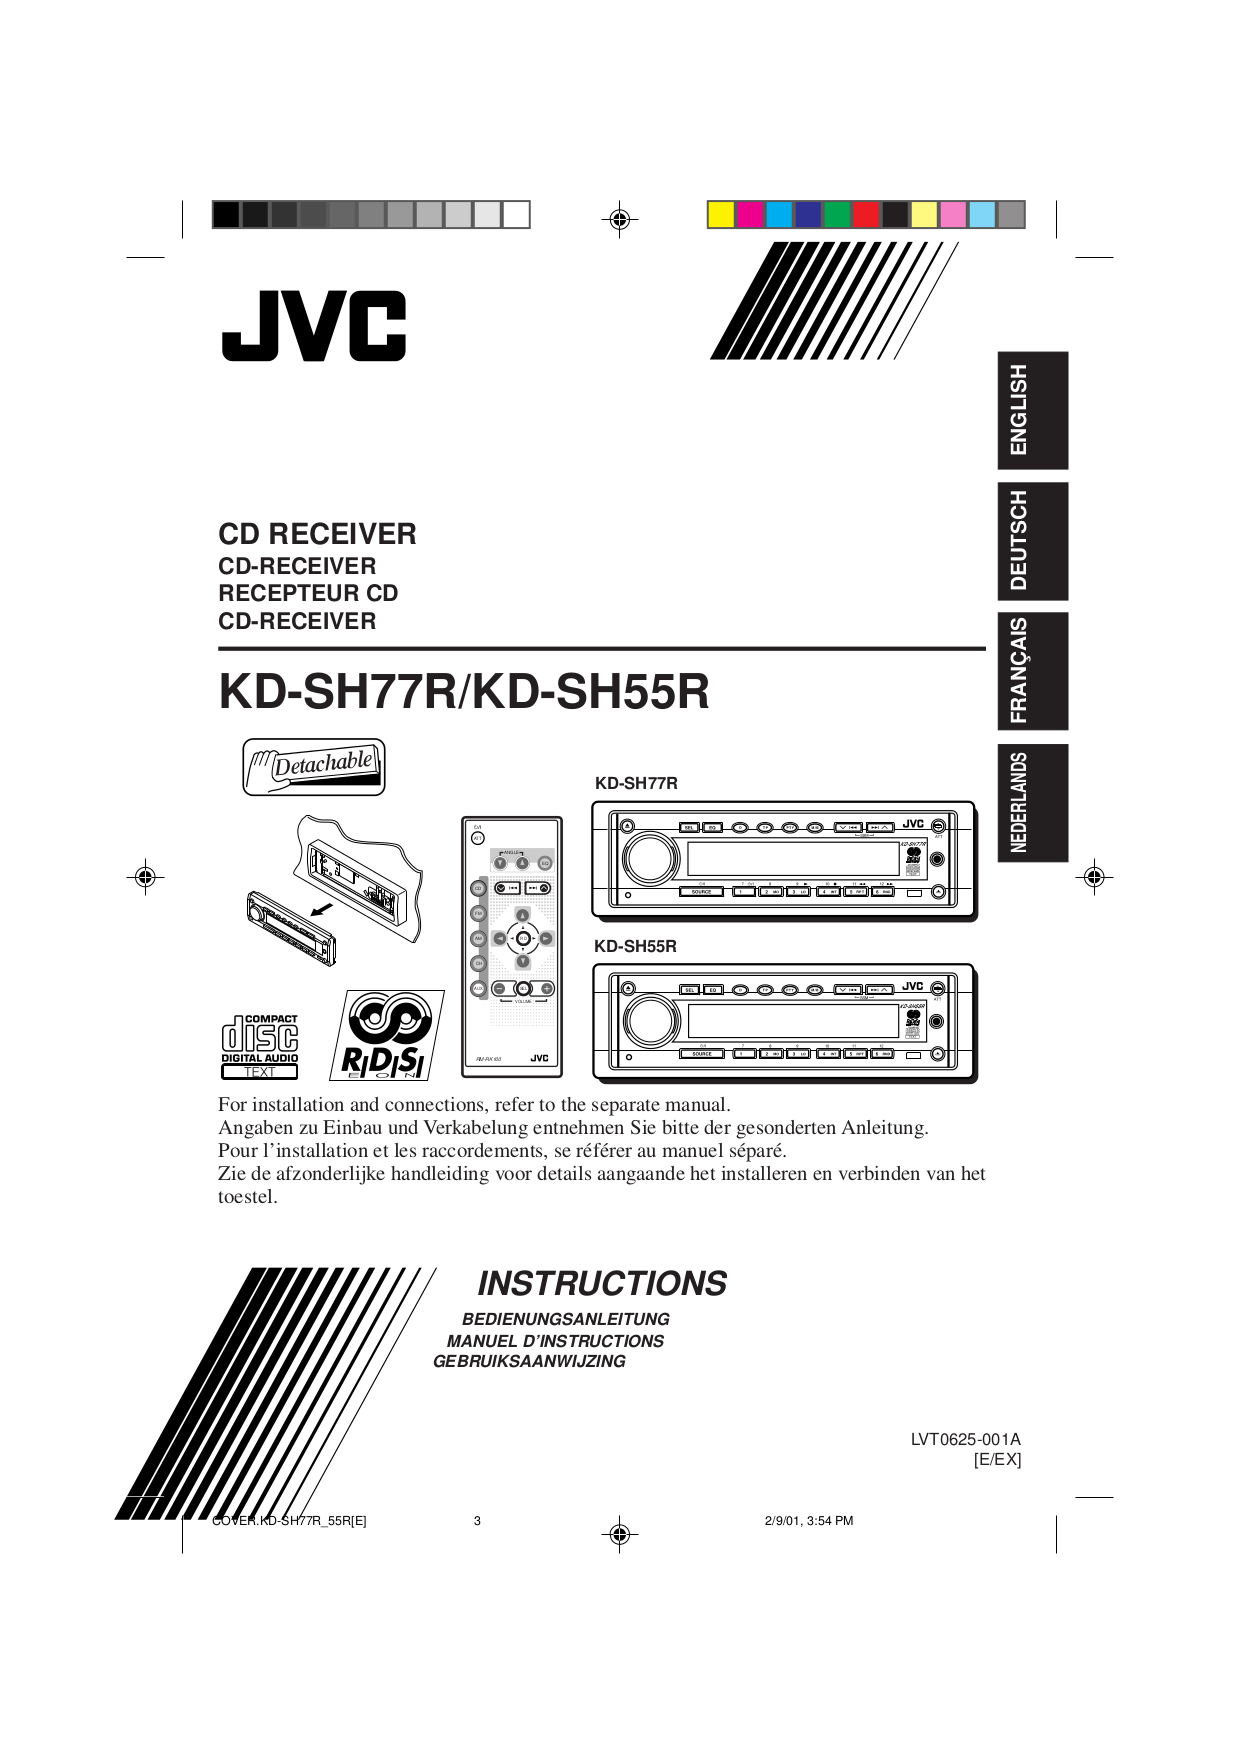 Jvc Kd S29 Manual Pdf S37 Wiring Diagram